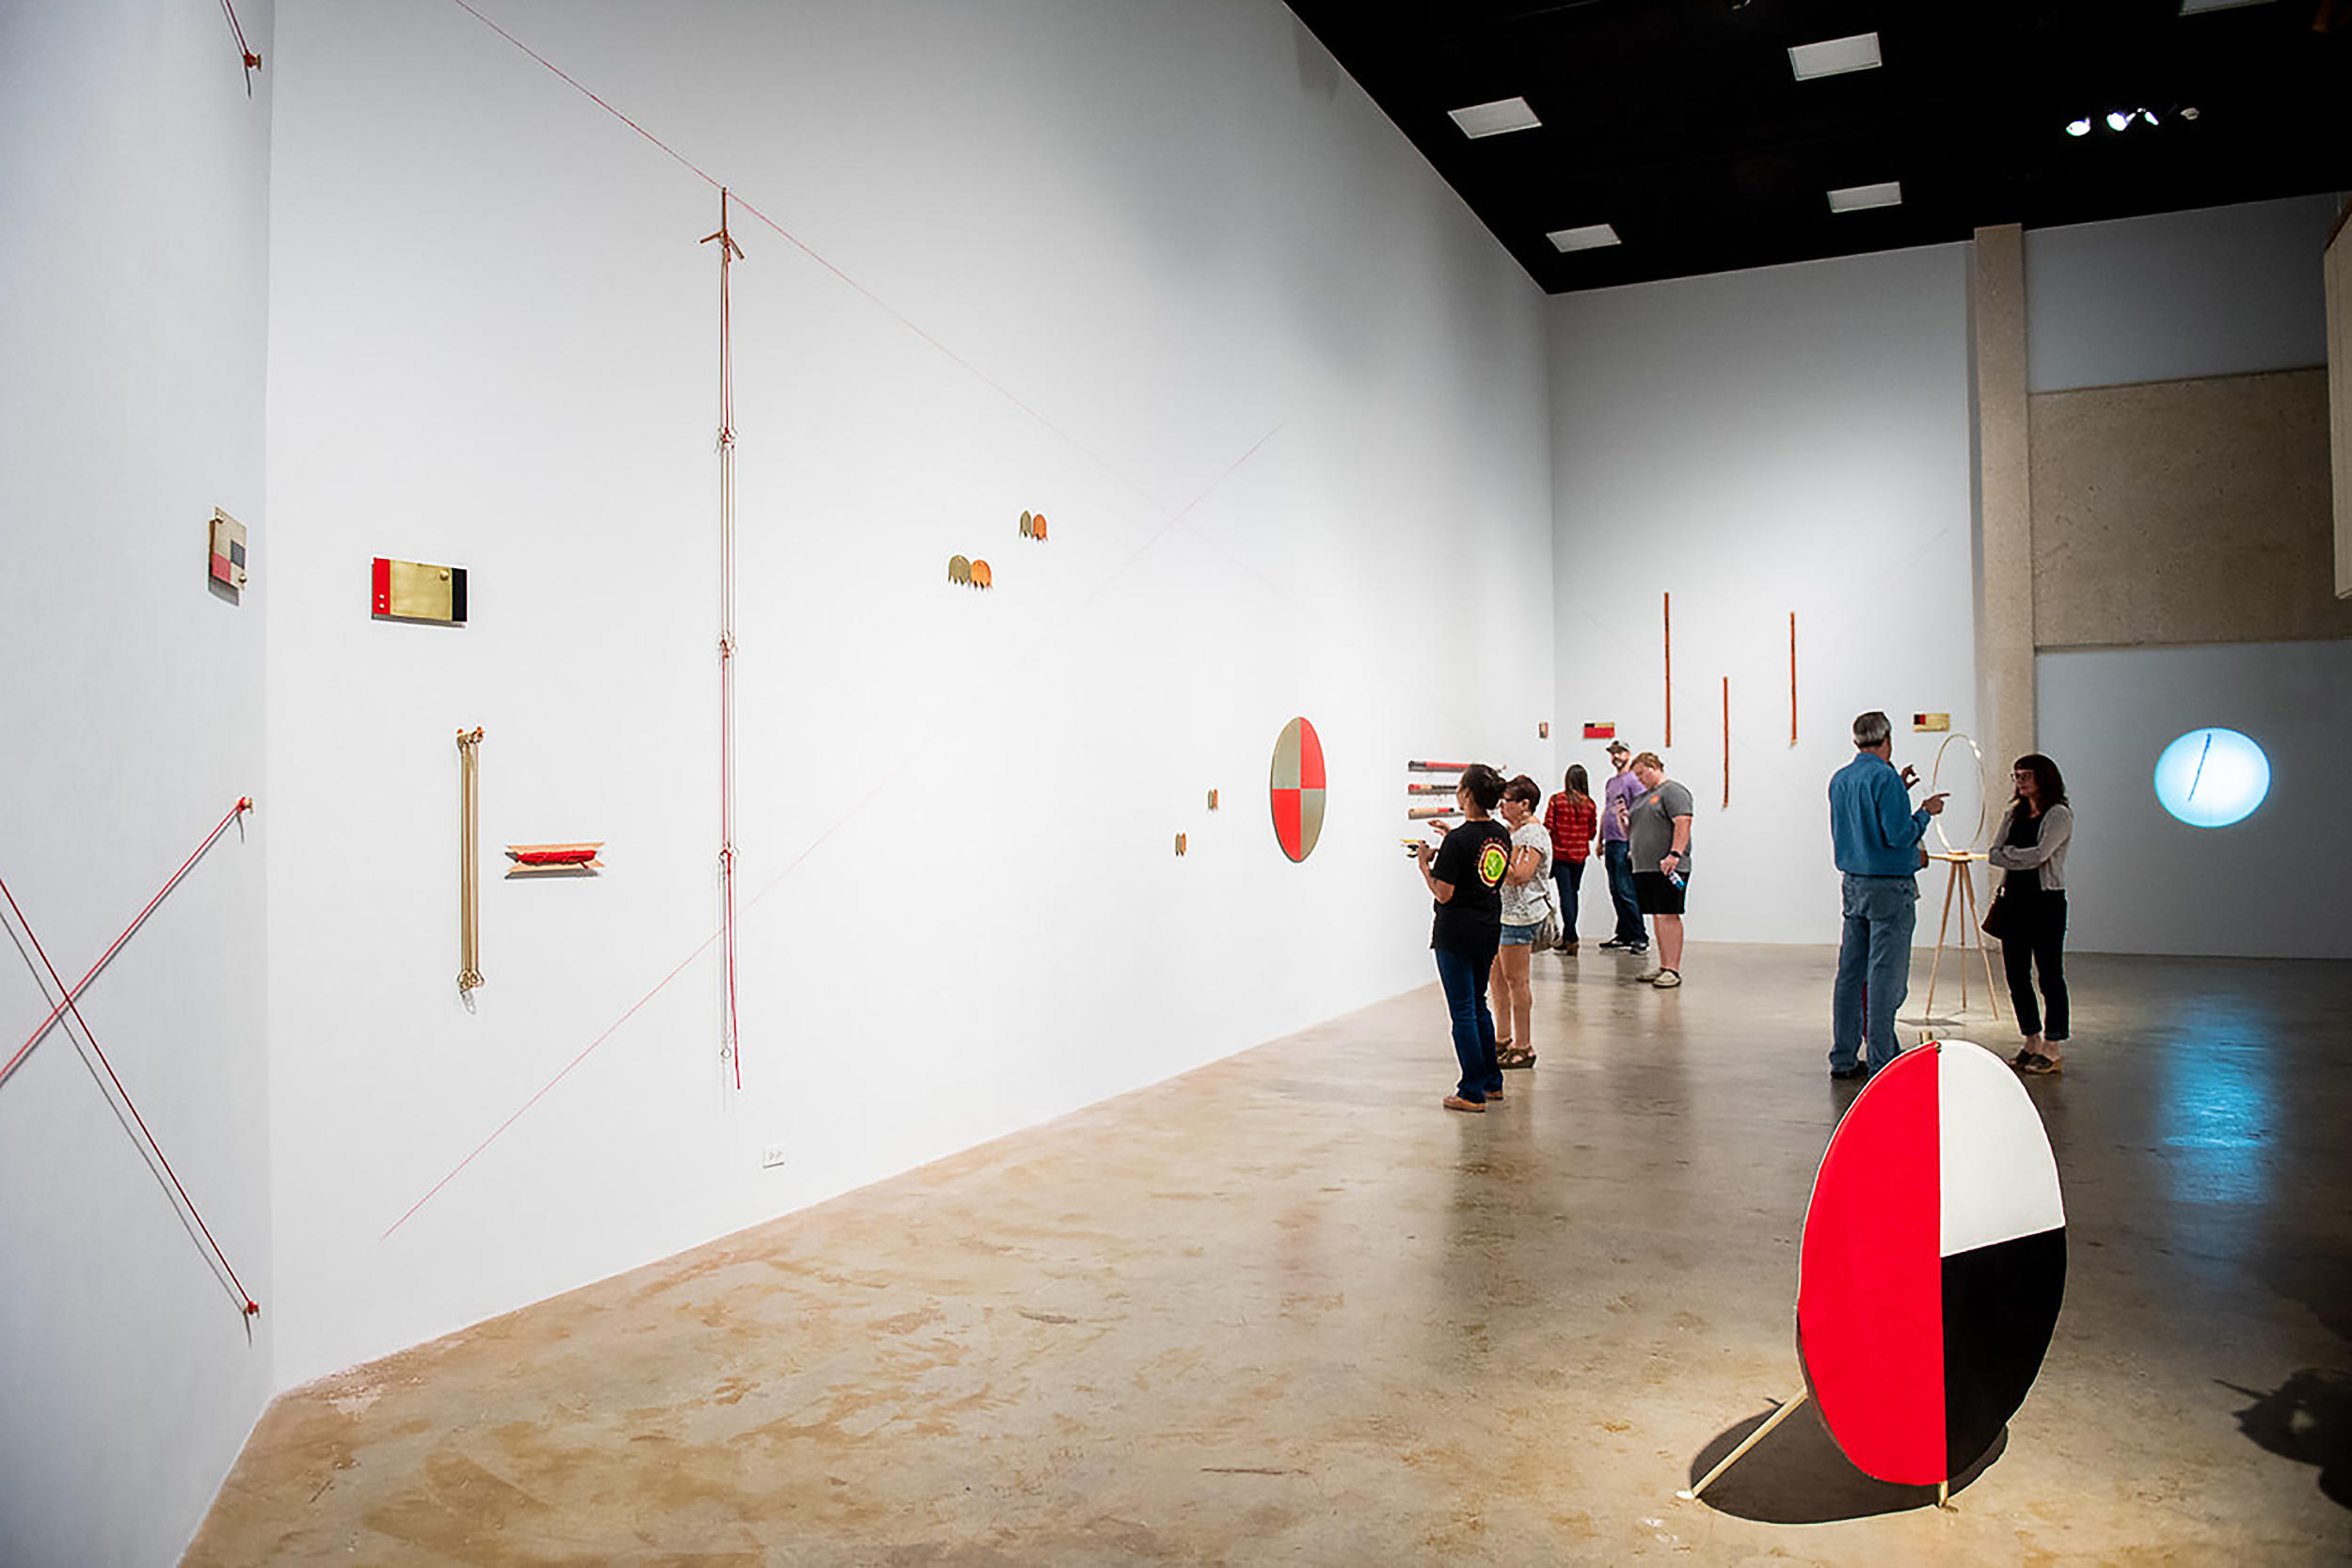 Martha Whittington at Texas A&M Corpus Christi - Martha Whittington's show, Line of Sight II, which ran November 5 - December 7 at Weil Gallery on the Texas A&M Corpus Christi campus, was recently featured on the college's website. See photos from the artist's talk here and an article about the show here.image: Martha Whittington, Line of Sight II, installation view courtesy of Texas A&M University, Corpus Christi